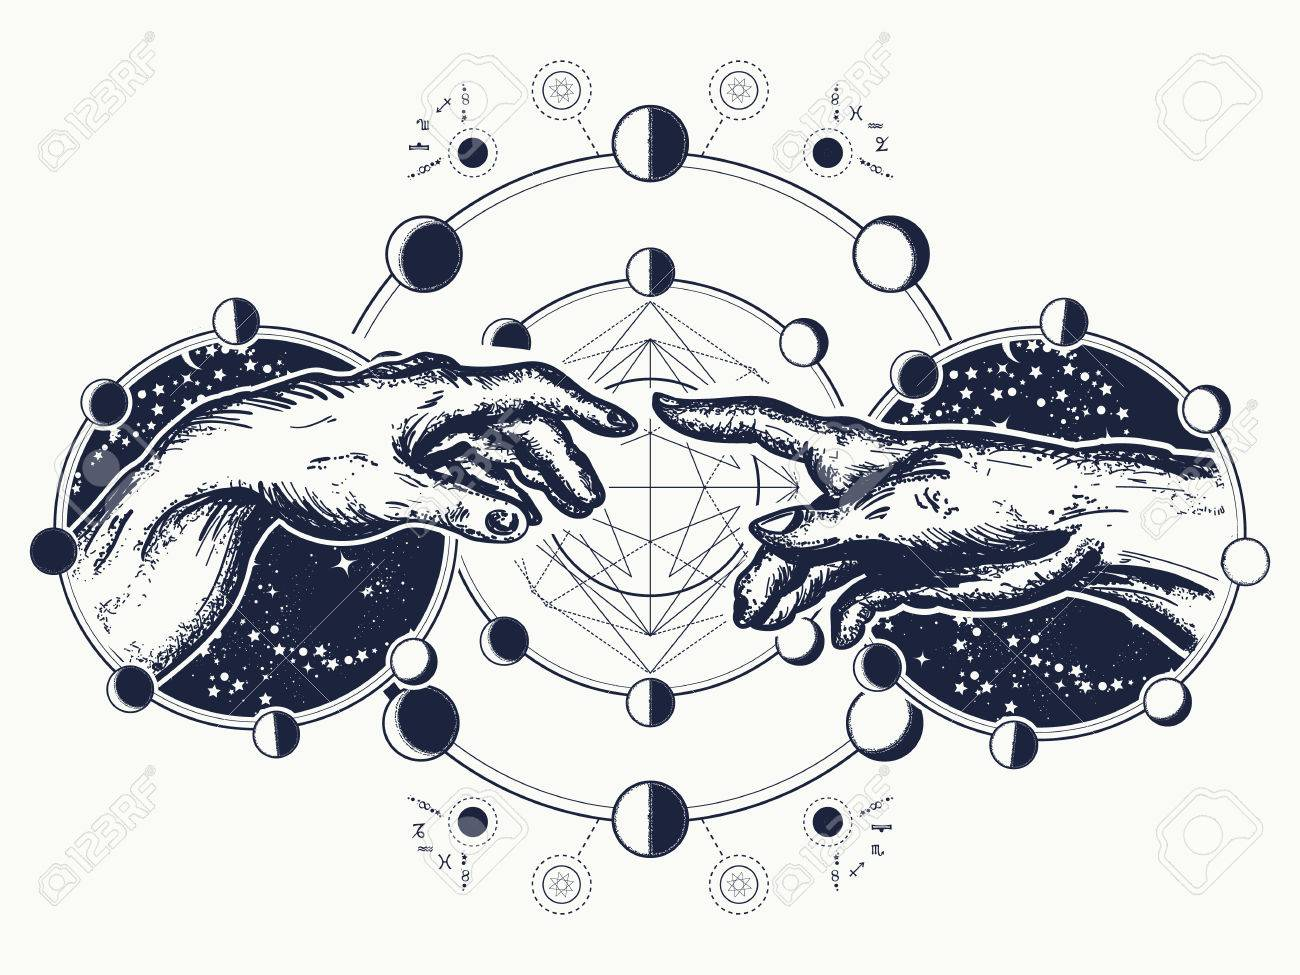 Hands tattoo Renaissance. Bog and Adam, symbol of spirituality, religion, connection and interaction. Michelangelo God's touch. Human hands touching with fingers tattoo and t-shirt design - 83487060